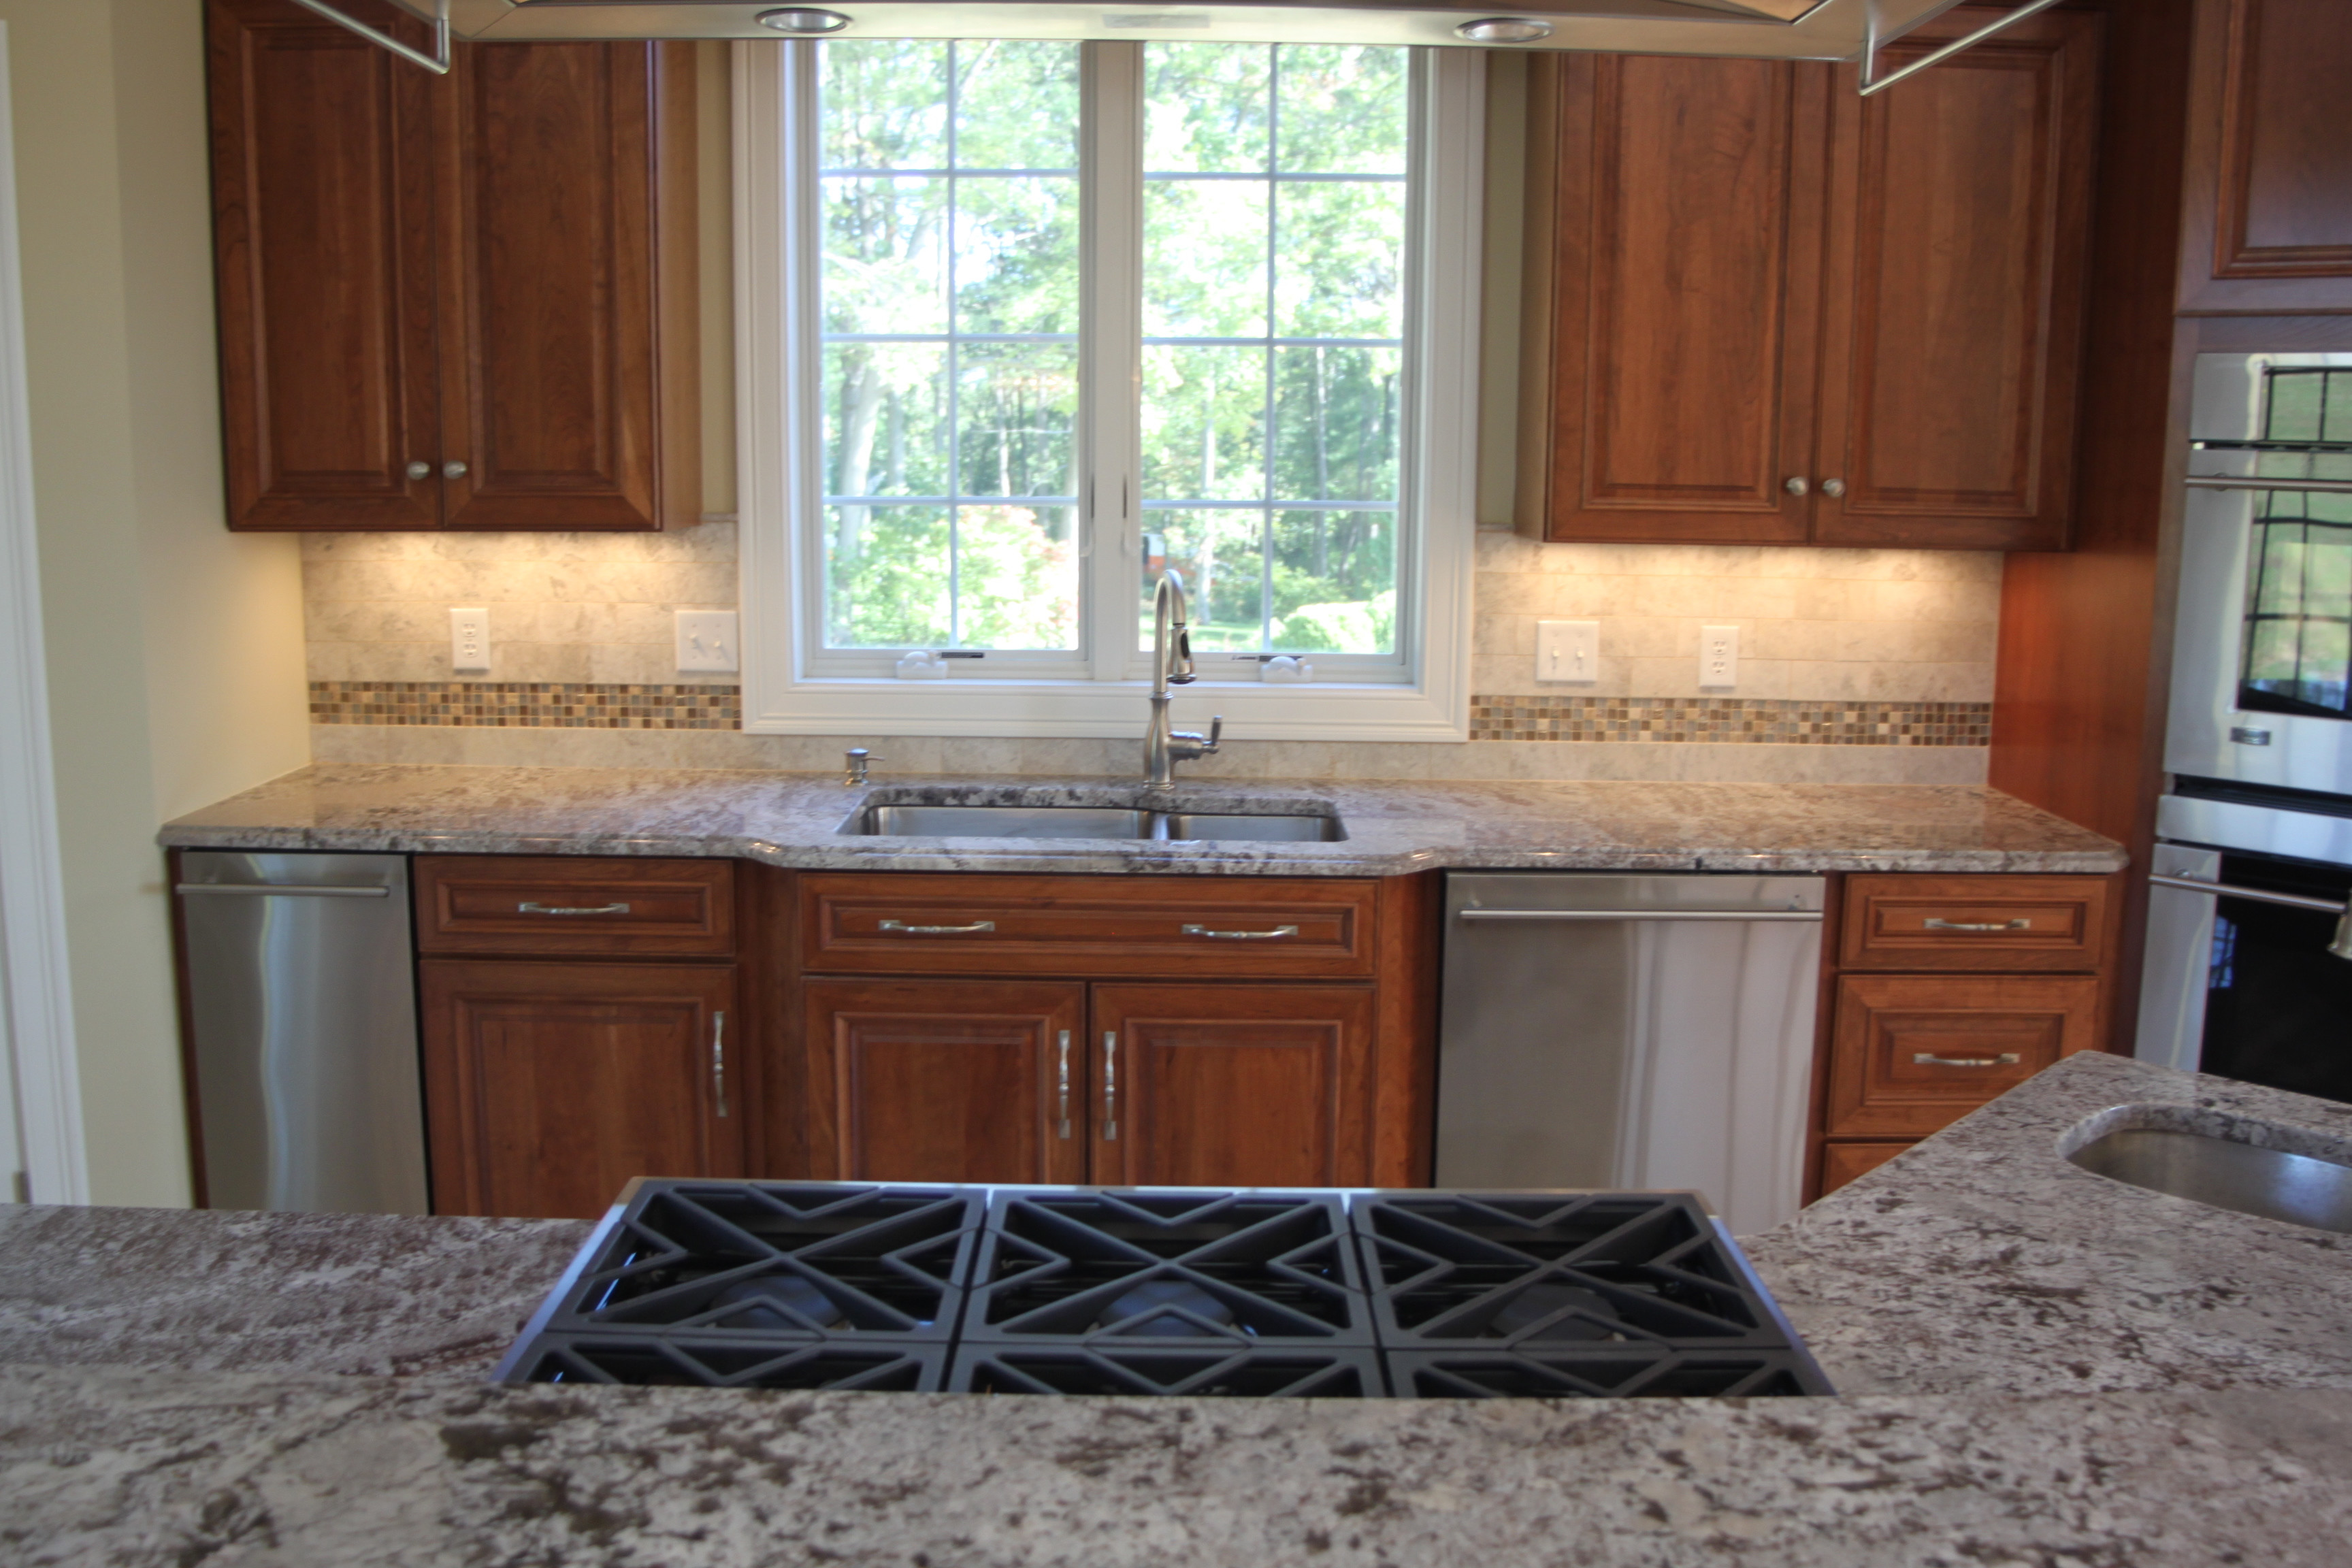 Most Popular Hardwood Floor Colors 2017 Of Should Your Flooring Match Your Kitchen Cabinets or Countertops In Should Your Flooring Match Your Kitchen Cabinets or Countertops